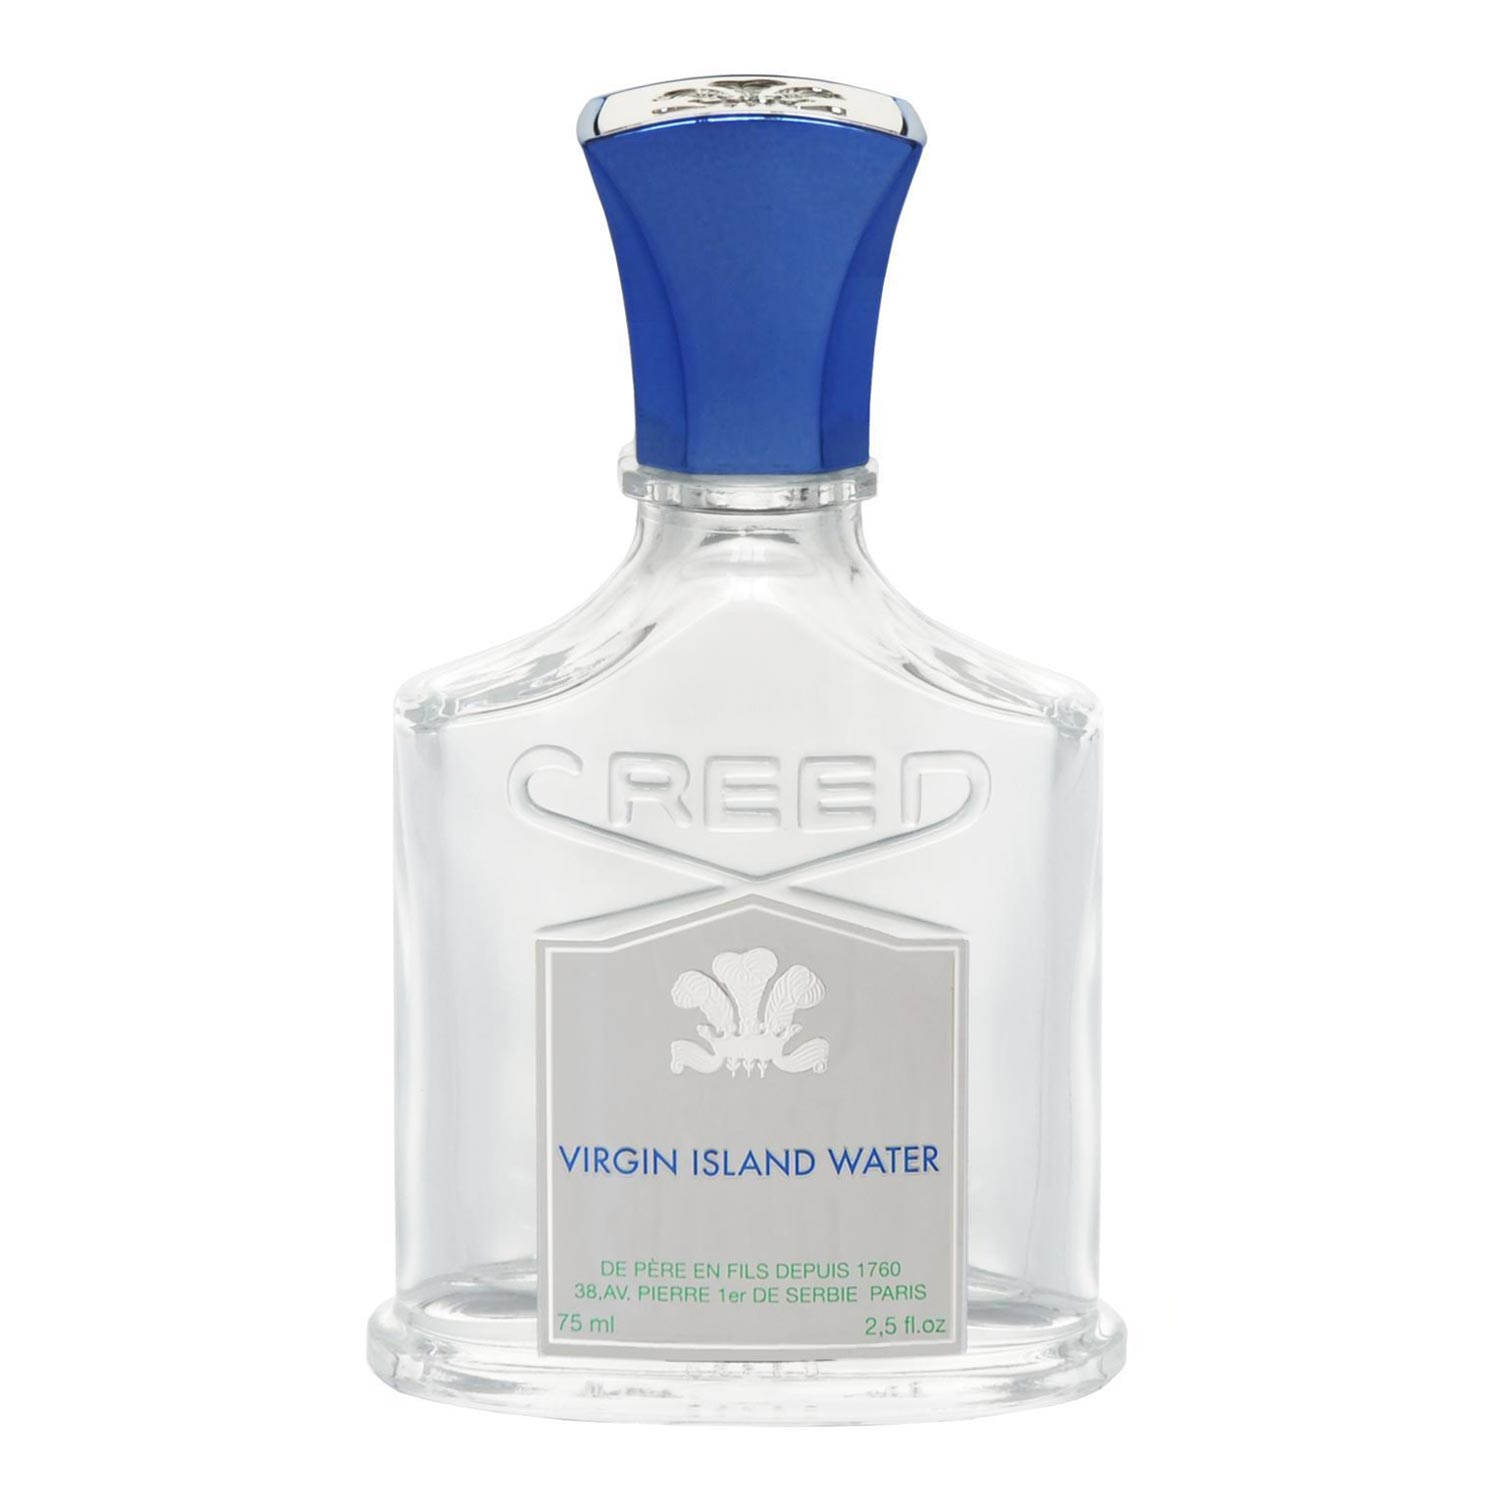 CREED Virgin Island Water Eau de Toilette